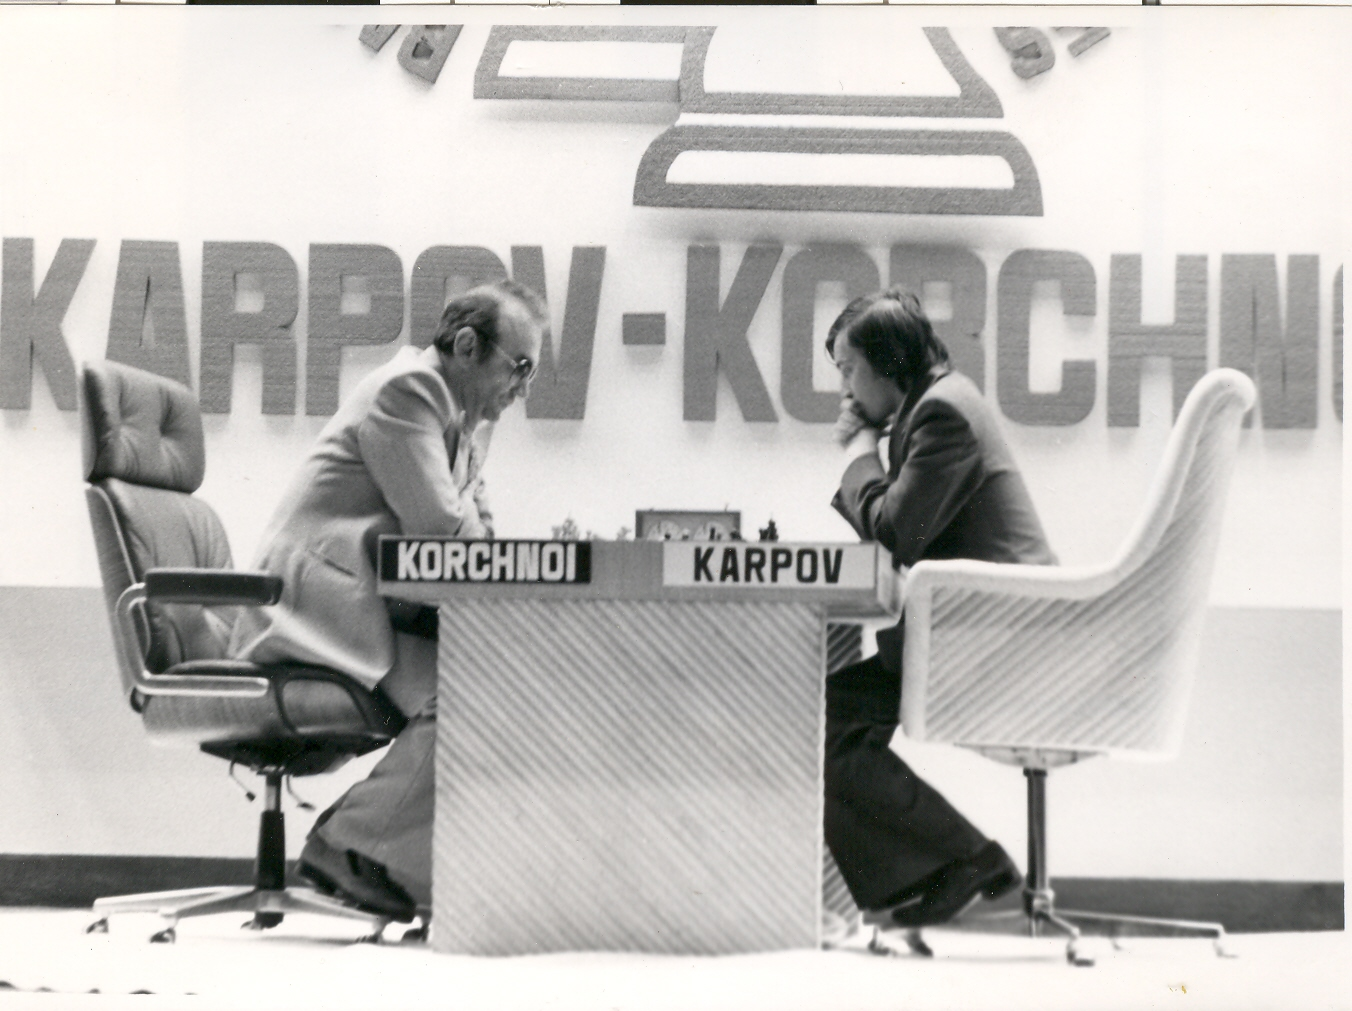 Viktor Korchnoi vs. Anatoly Karpov in Baguio City, Philippines, in 1978 World Championship.